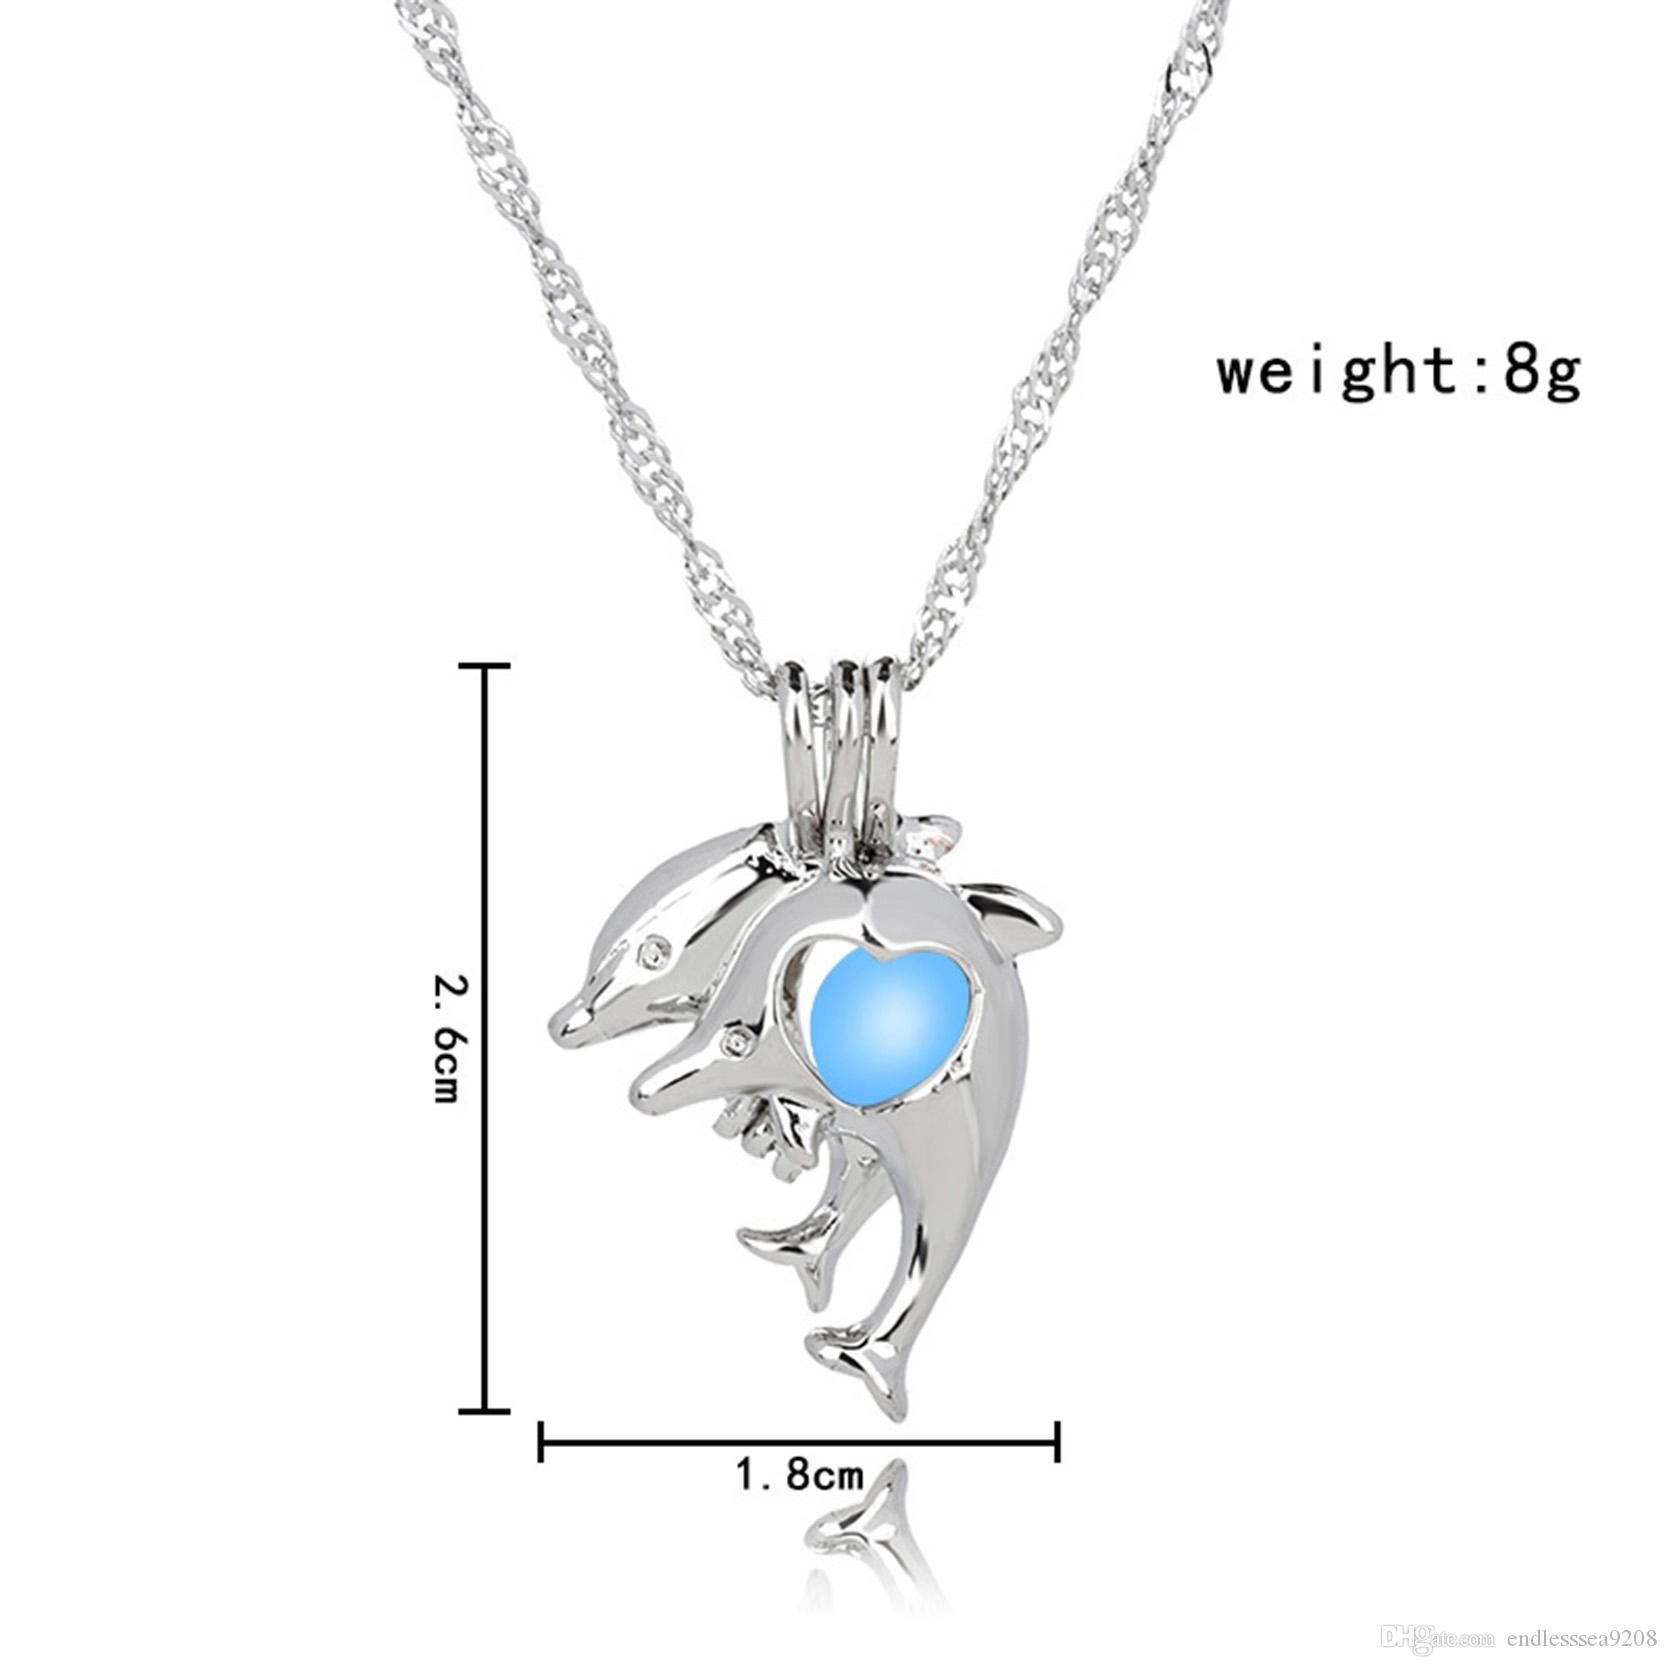 Dolphin Necklace Glow in the Dark Luminous pendant necklaces Jewelry Charm Choker Pendants & Necklaces For Women Best Gift